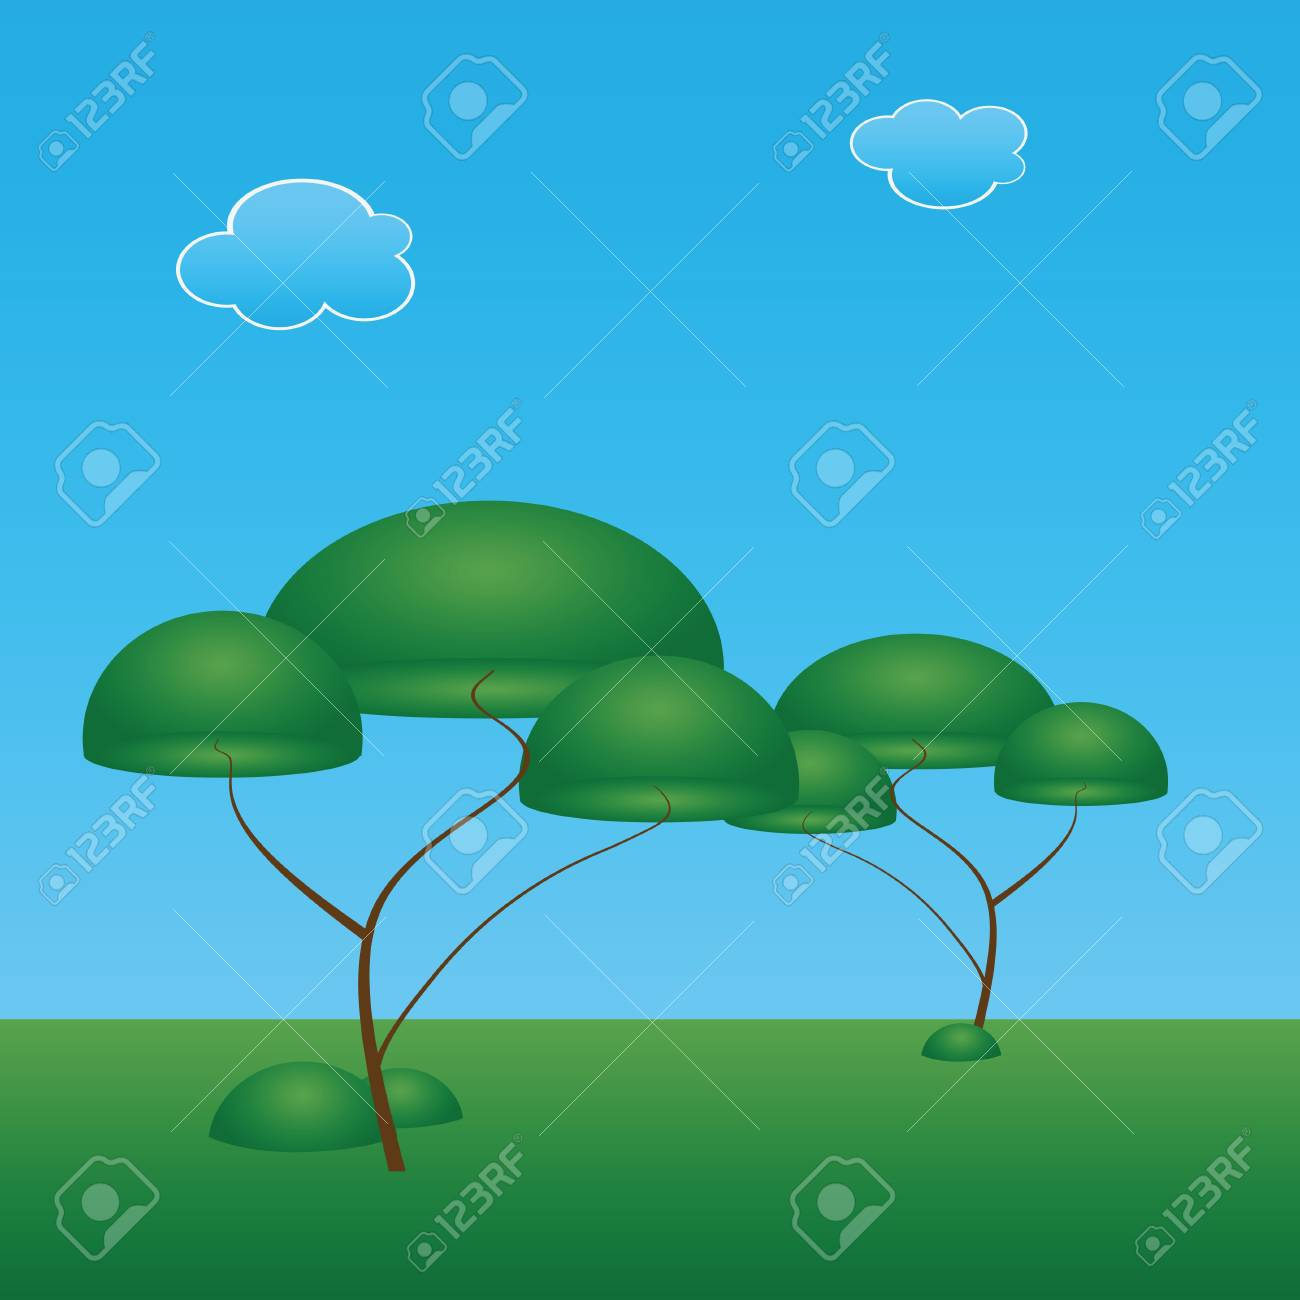 Trees with an oval crown. Vector illustration. Stock Vector - 13319888